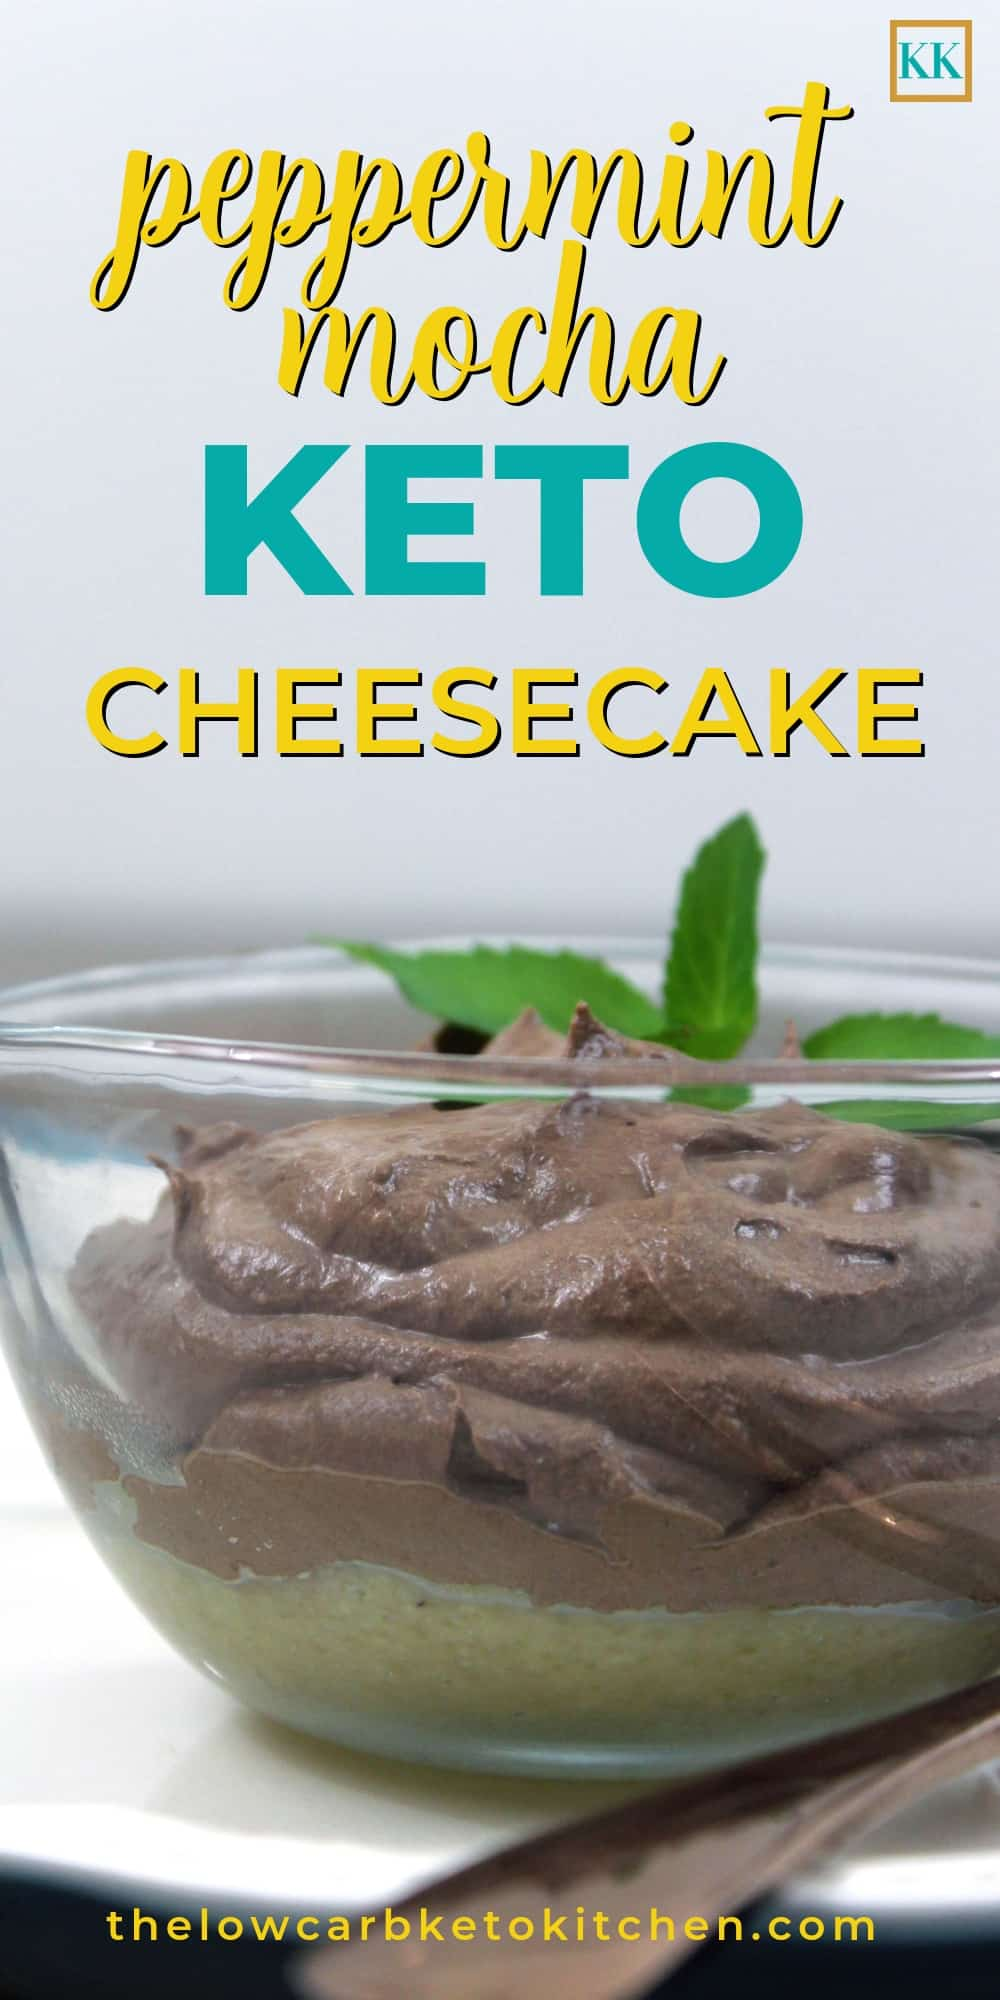 No-Bake Keto Peppermint Mocha Cheesecake